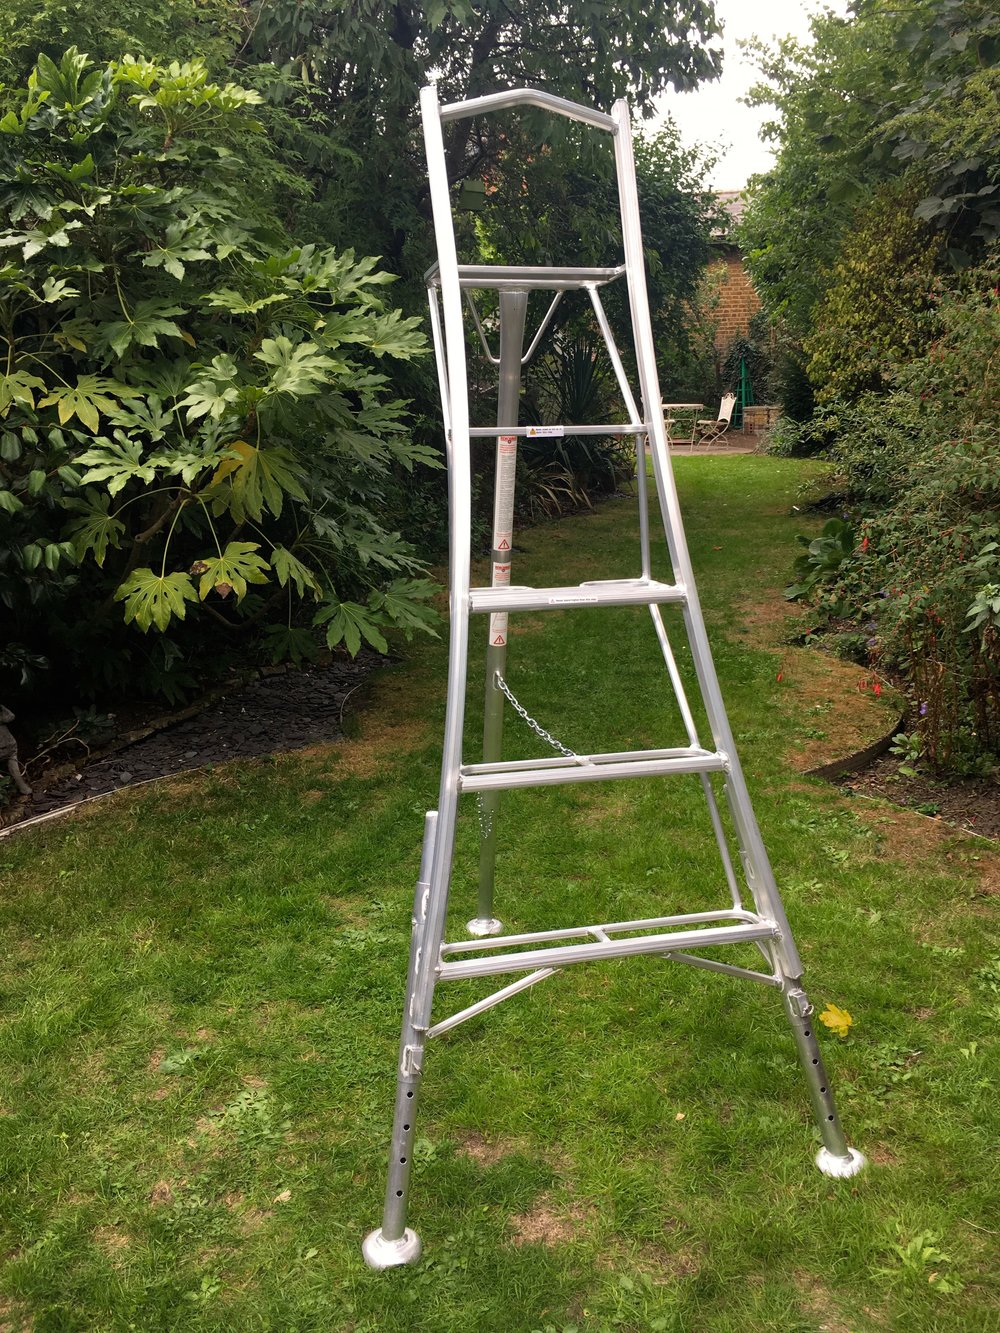 OCTOBER:  UP THE LADDER, WITHOUT A WOBBLE